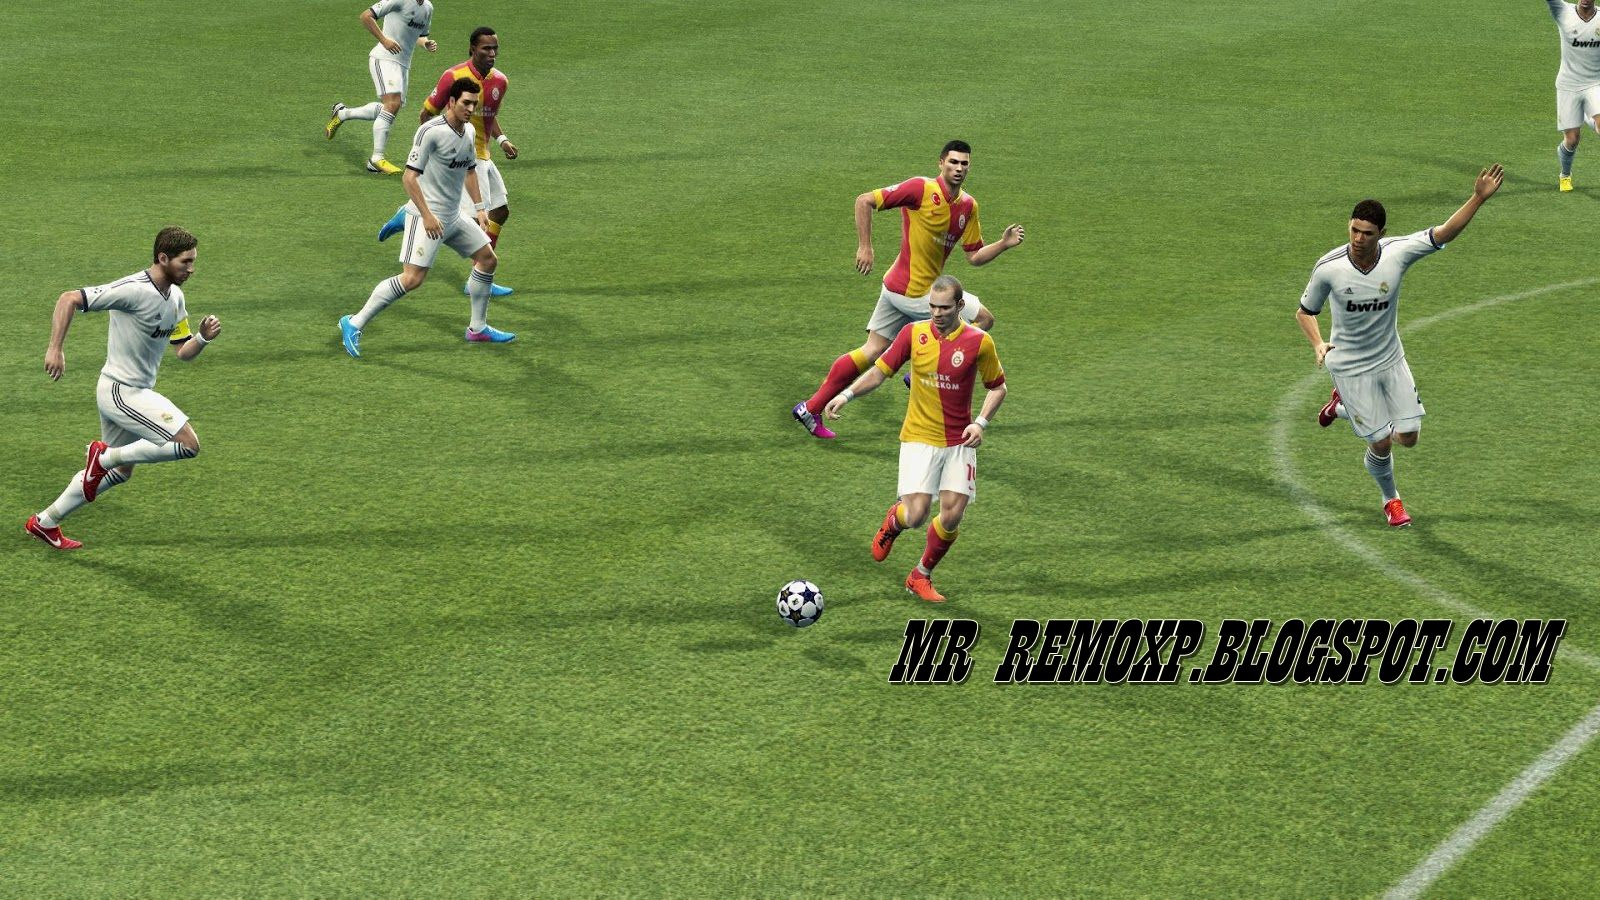 Download Patch 3.4 PES 2013 Transfer Terbaru (SINGLE LINK)